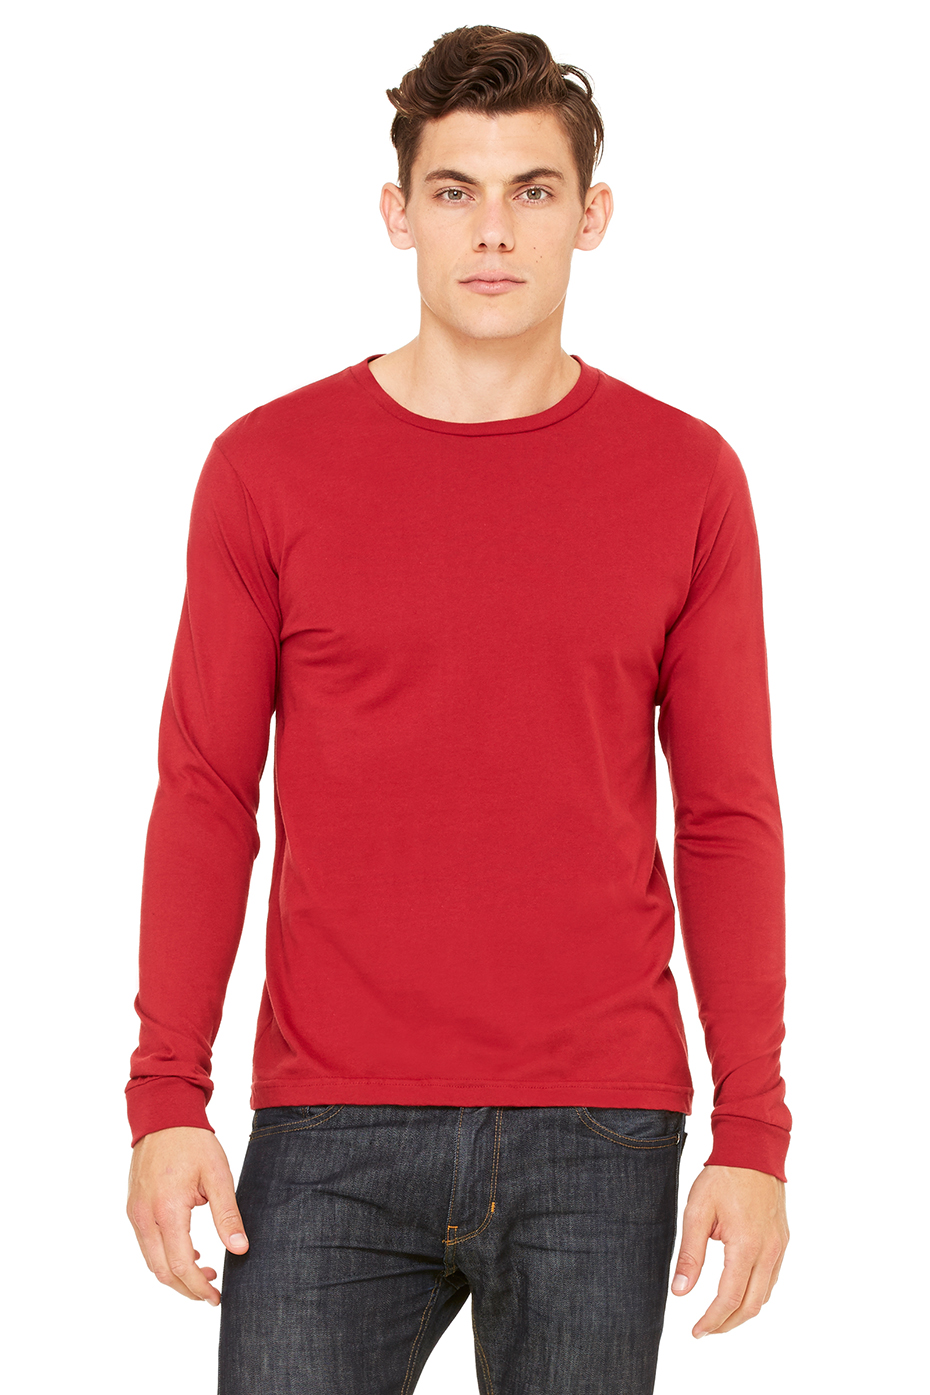 Mens red long sleeve t shirt is shirt for What is a long sleeve t shirt